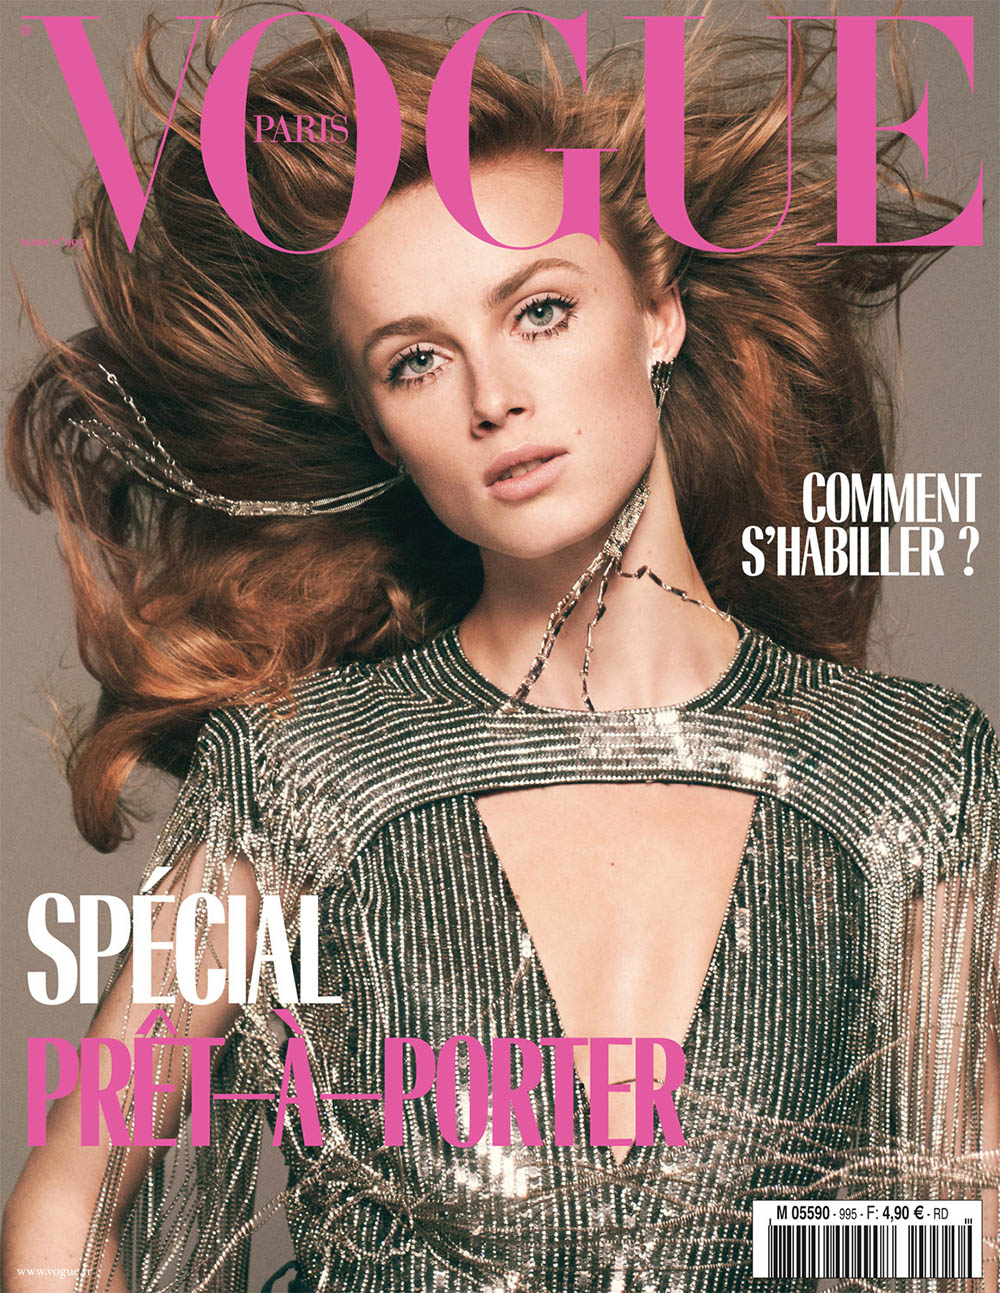 Rianne van Rompaey covers Vogue Paris March 2019 by David Sims